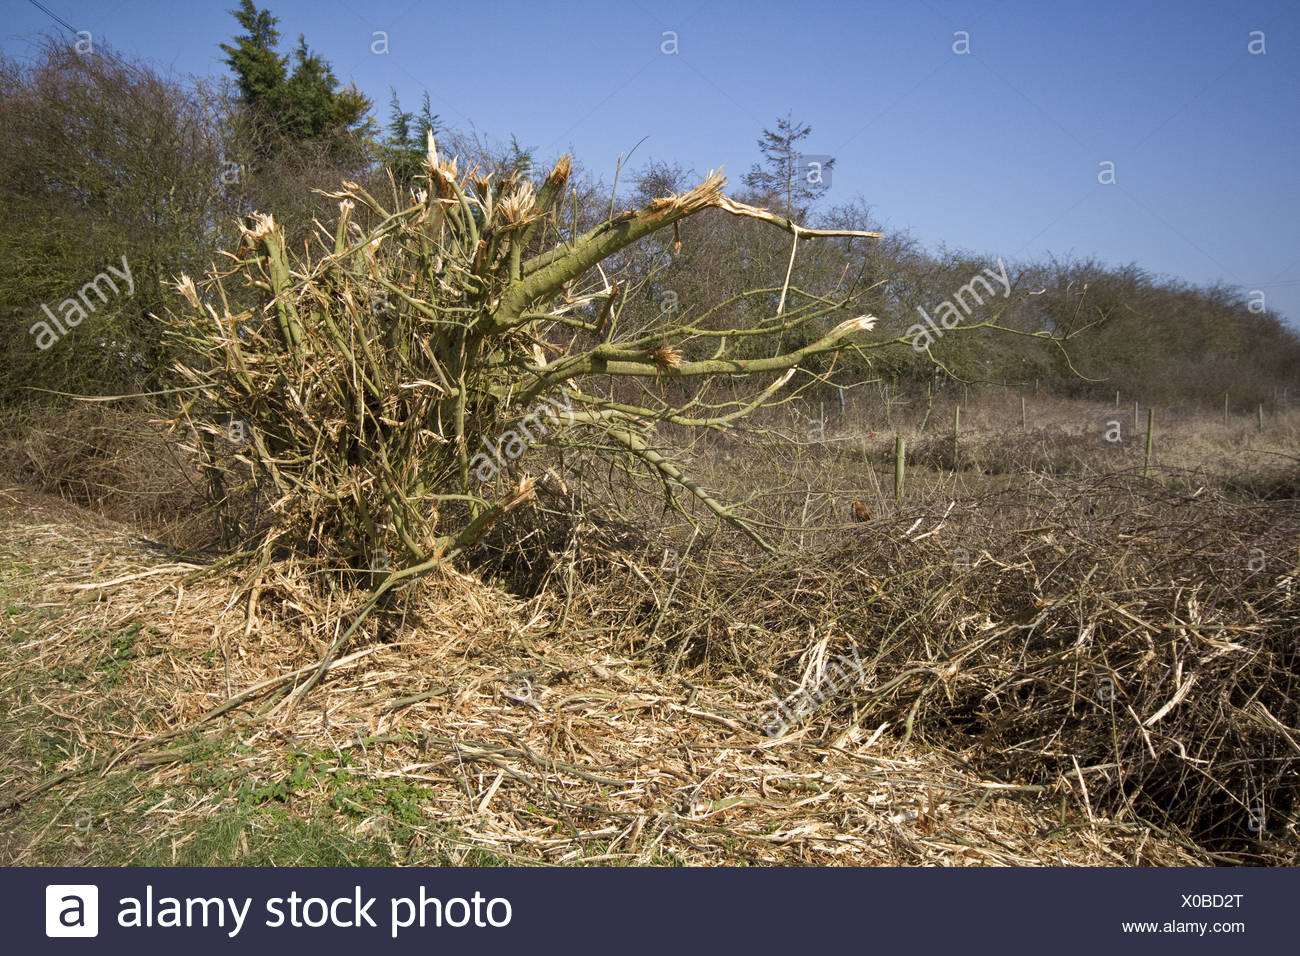 A very badly flailed hedge has done a lot of damage to this important habitat. - Stock Image